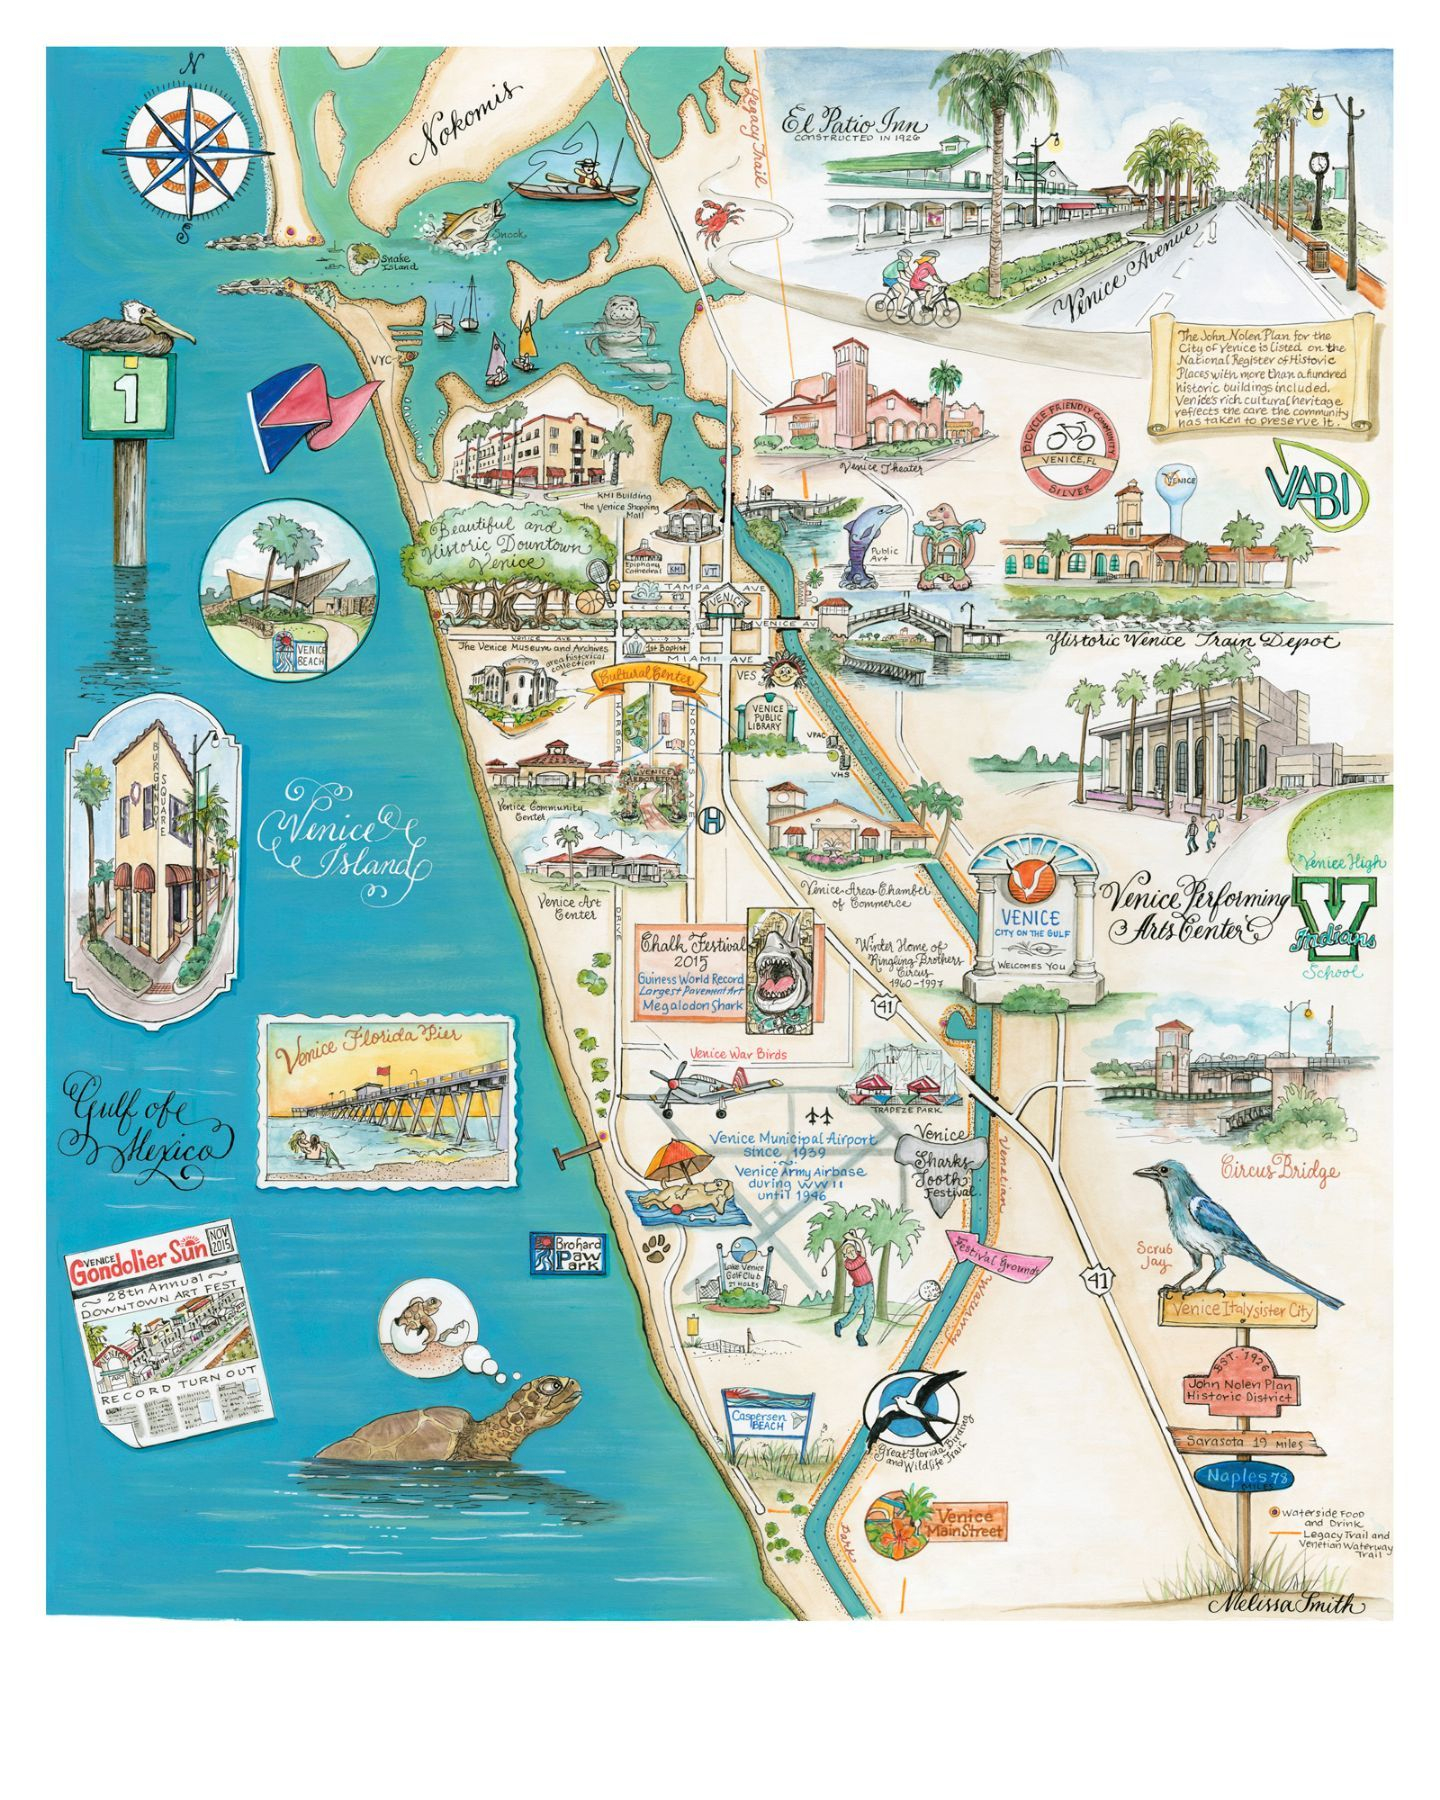 Venice, Florida Map - This Map Is One Of The Prettiest Maps I Have - Natural Springs Florida Map